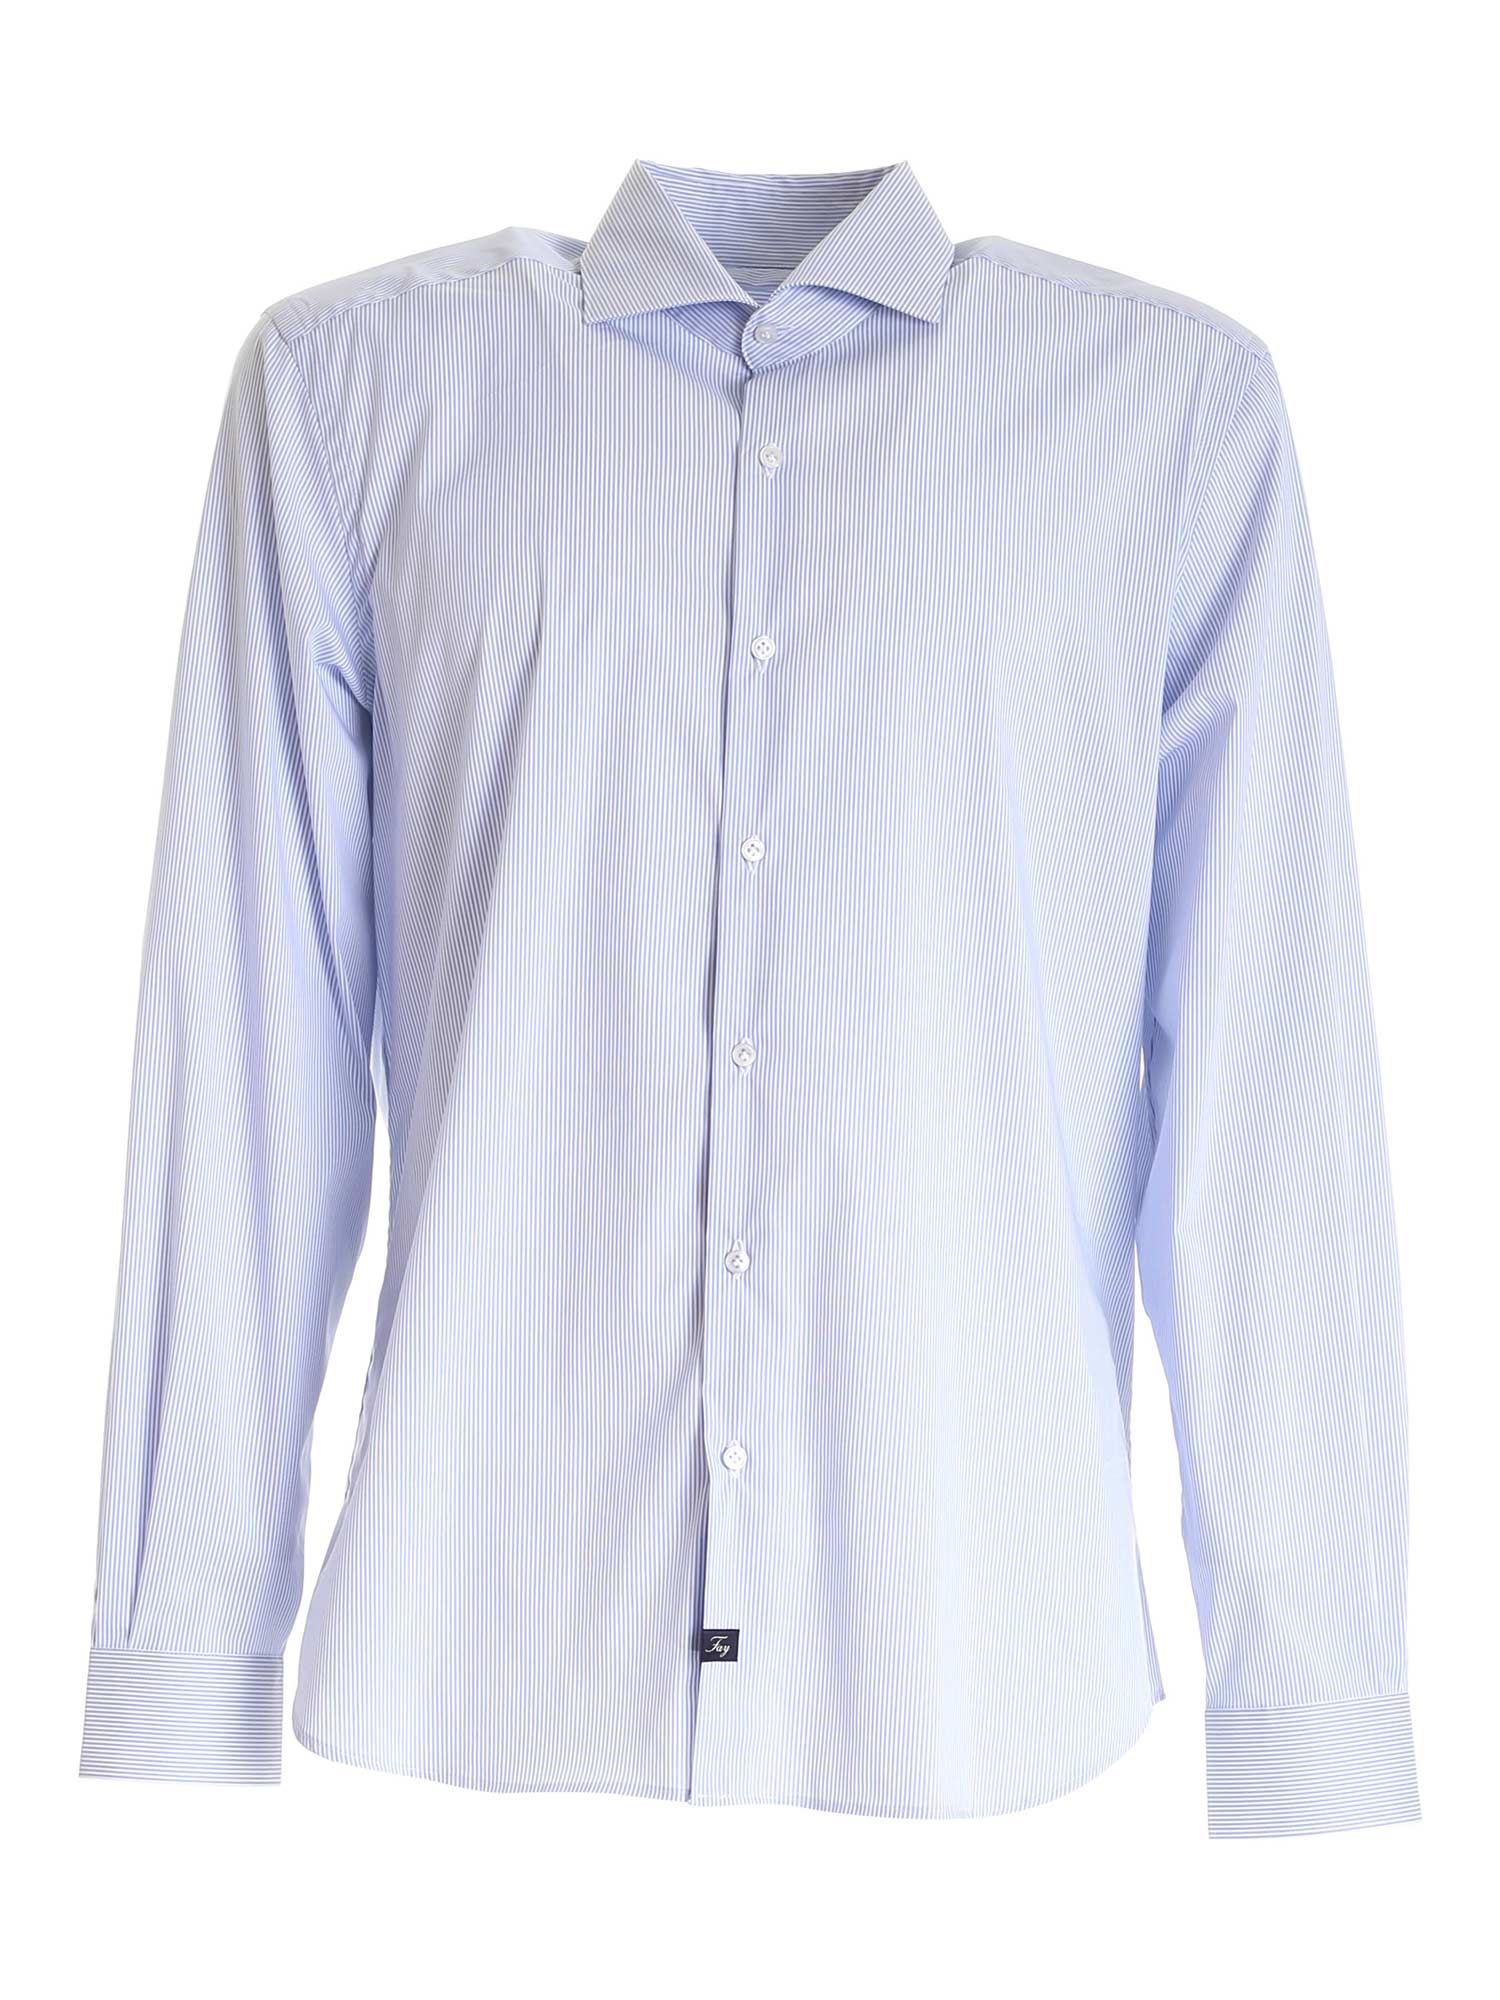 Fay Cottons STRIPED SHIRT IN WHITE AND LIGHT BLUE